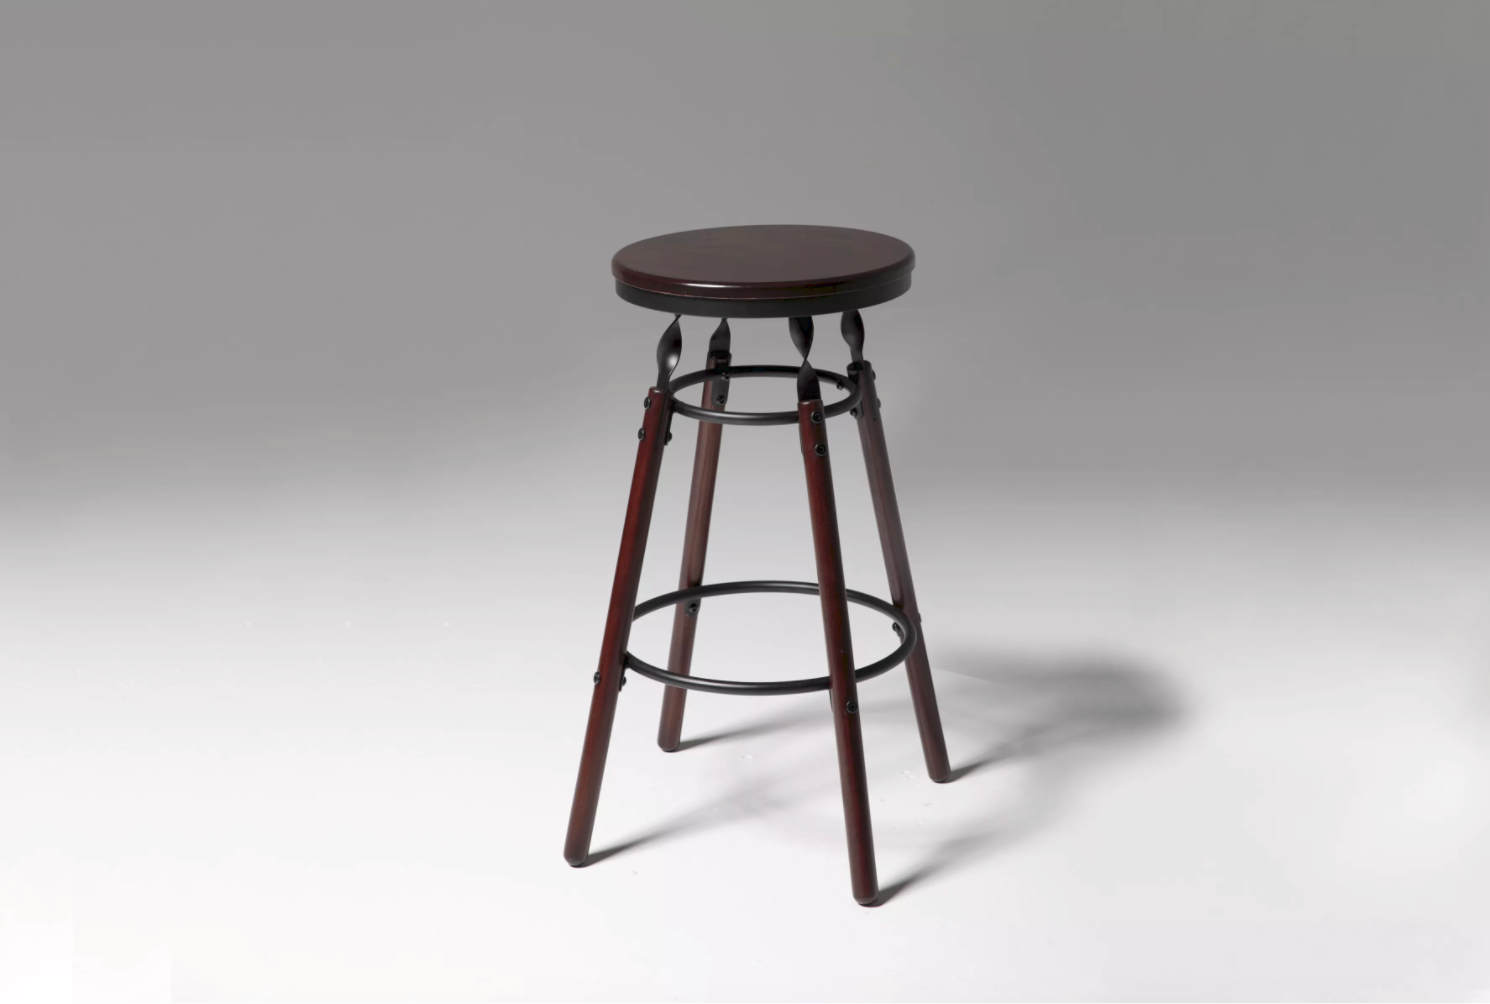 solid bar metal stools uk on category cult seat black with wood stool steel and ideas victoria